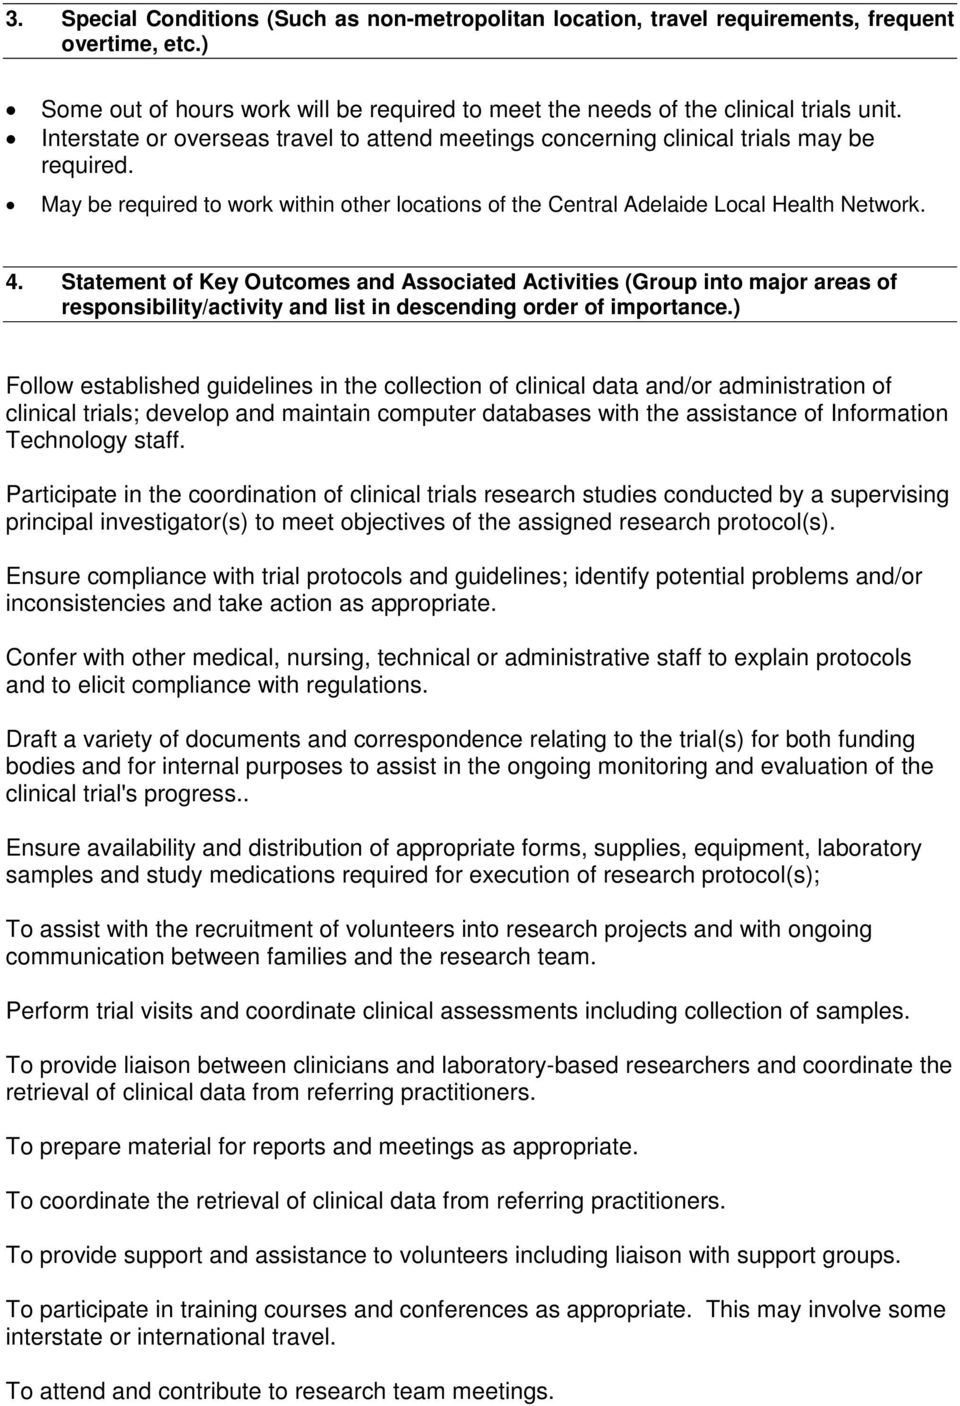 Statement of Key Outcomes and Associated Activities (Group into major areas of responsibility/activity and list in descending order of importance.